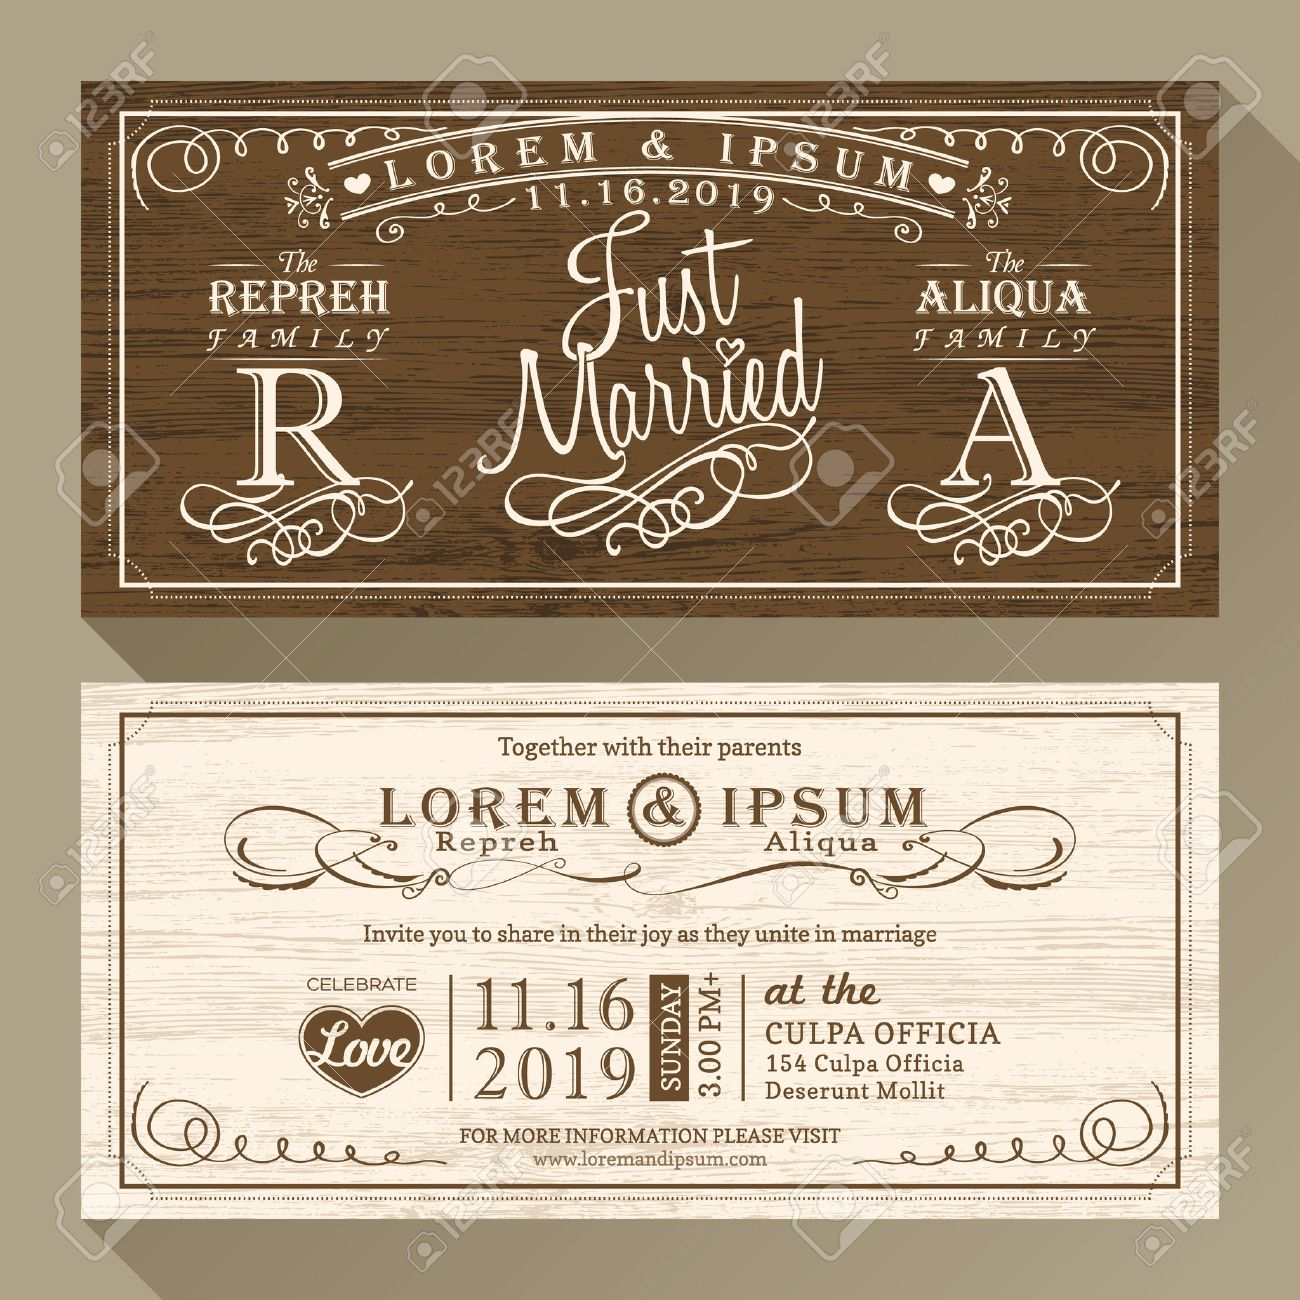 Vintage Wedding Invitation Card Border And Frame Design Template